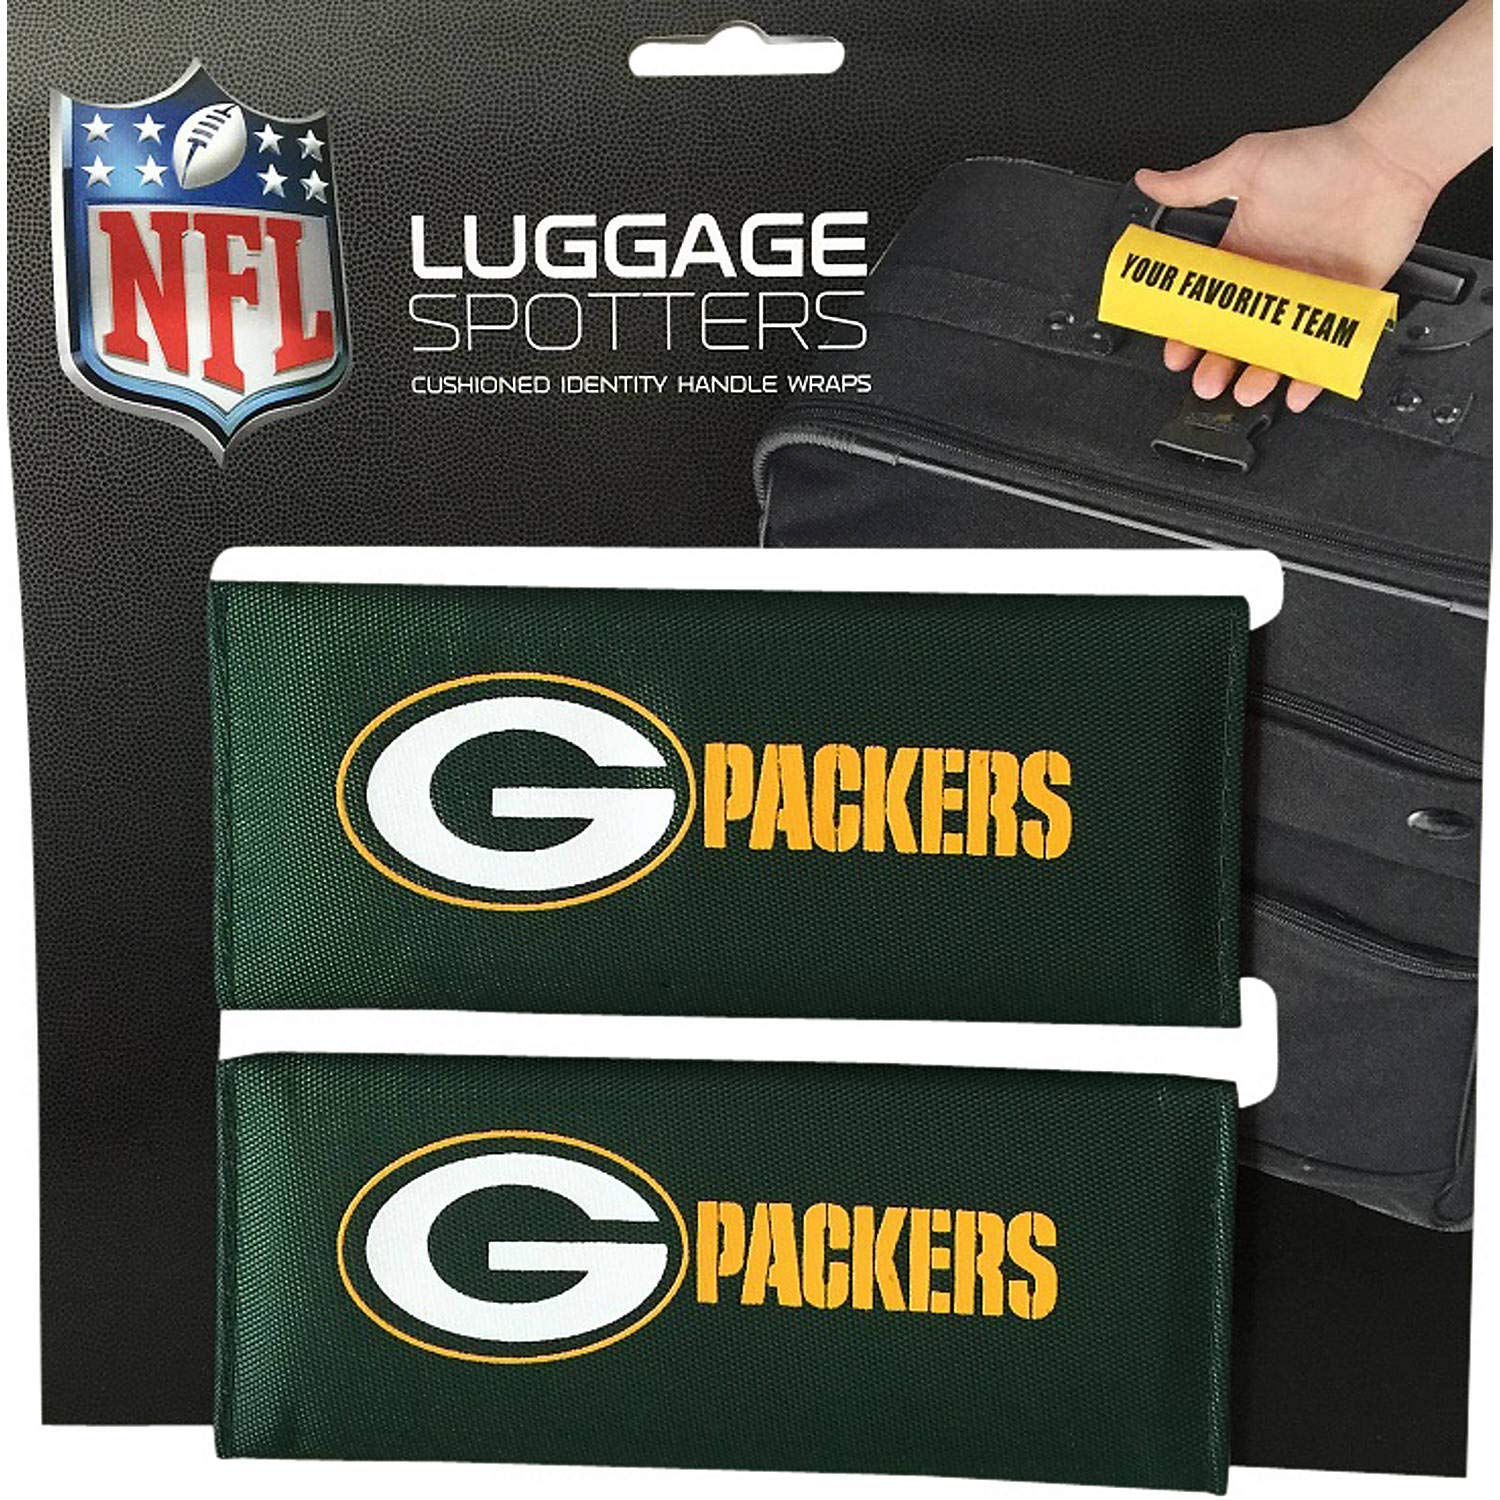 PACKERS Luggage Spotter Suitcase Handle Wrap Bag Tag Locator with I.D 50/% OFF CLOSEOUT Pocket THEY ARE SELLING OUT FAST! 2-PACK